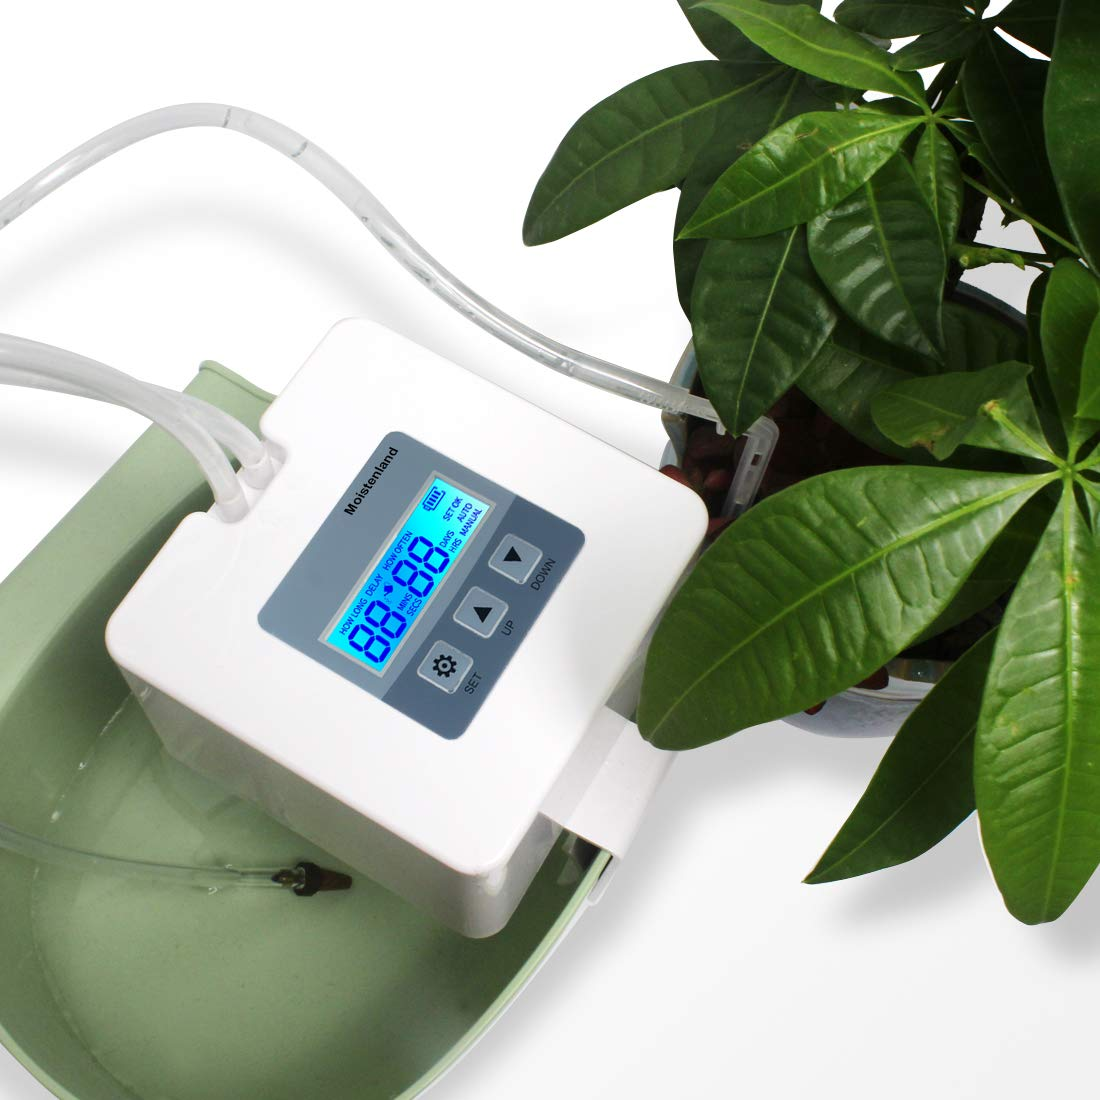 DIY Micro Automatic Drip Irrigation Kit,Houseplants Self Watering System with 30-Day Digital Programmable Water Timer 5V USB Power Operation for Indoor Potted Plants Vacation Plant Watering